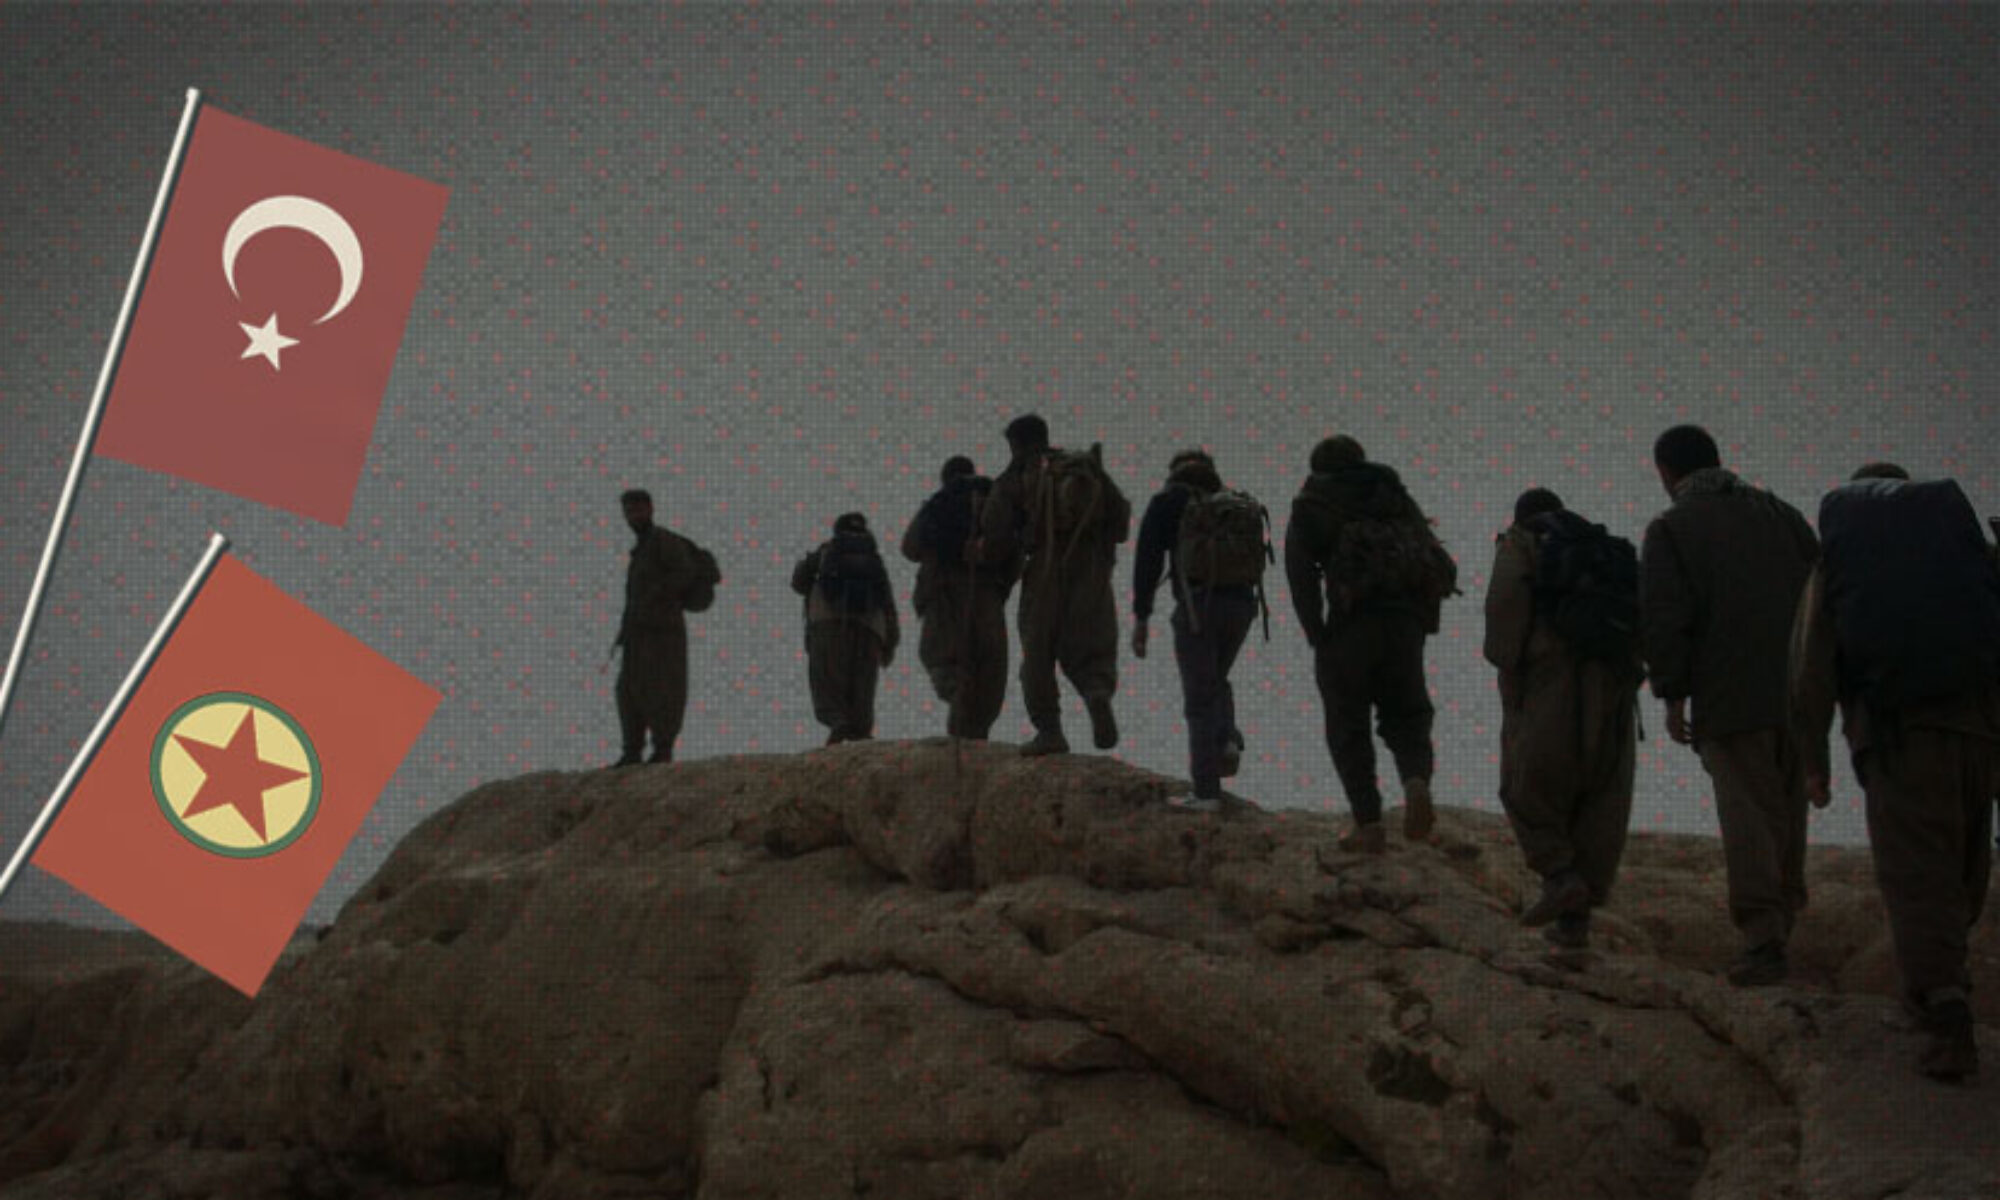 The number of PKK militants in Turkey decreased by 83% during the past 4 years (2)